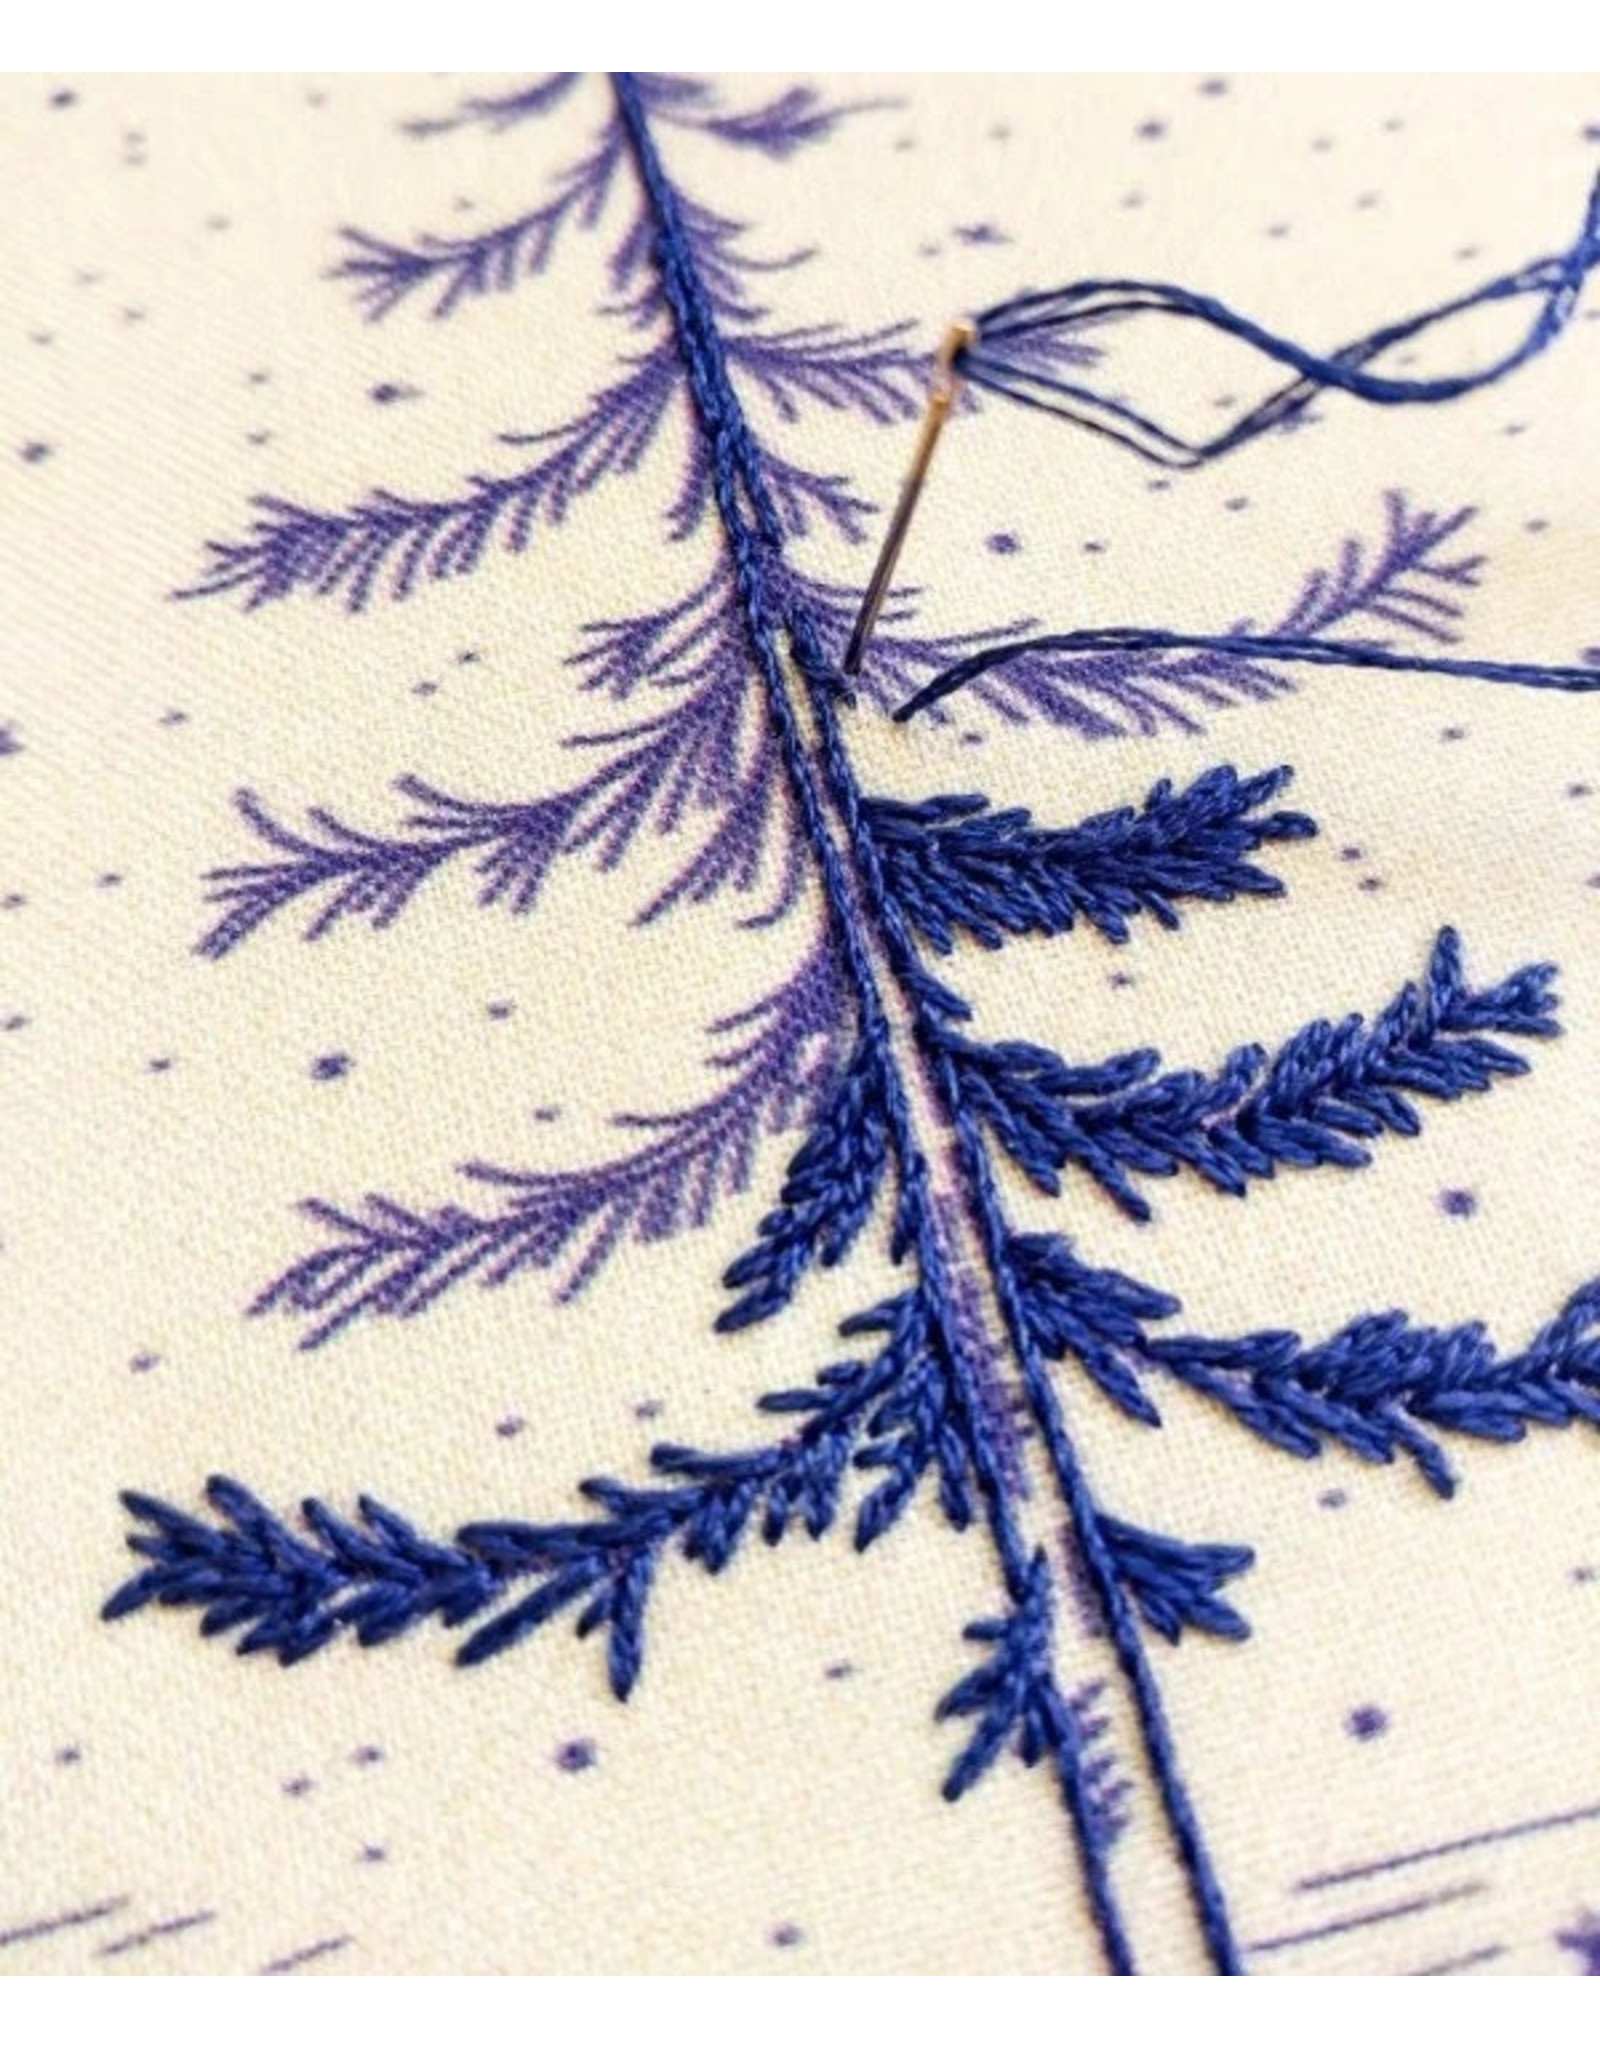 cozyblue COMING MID OCT.-Moonlight Pine Embroidery Kit from cozyblue